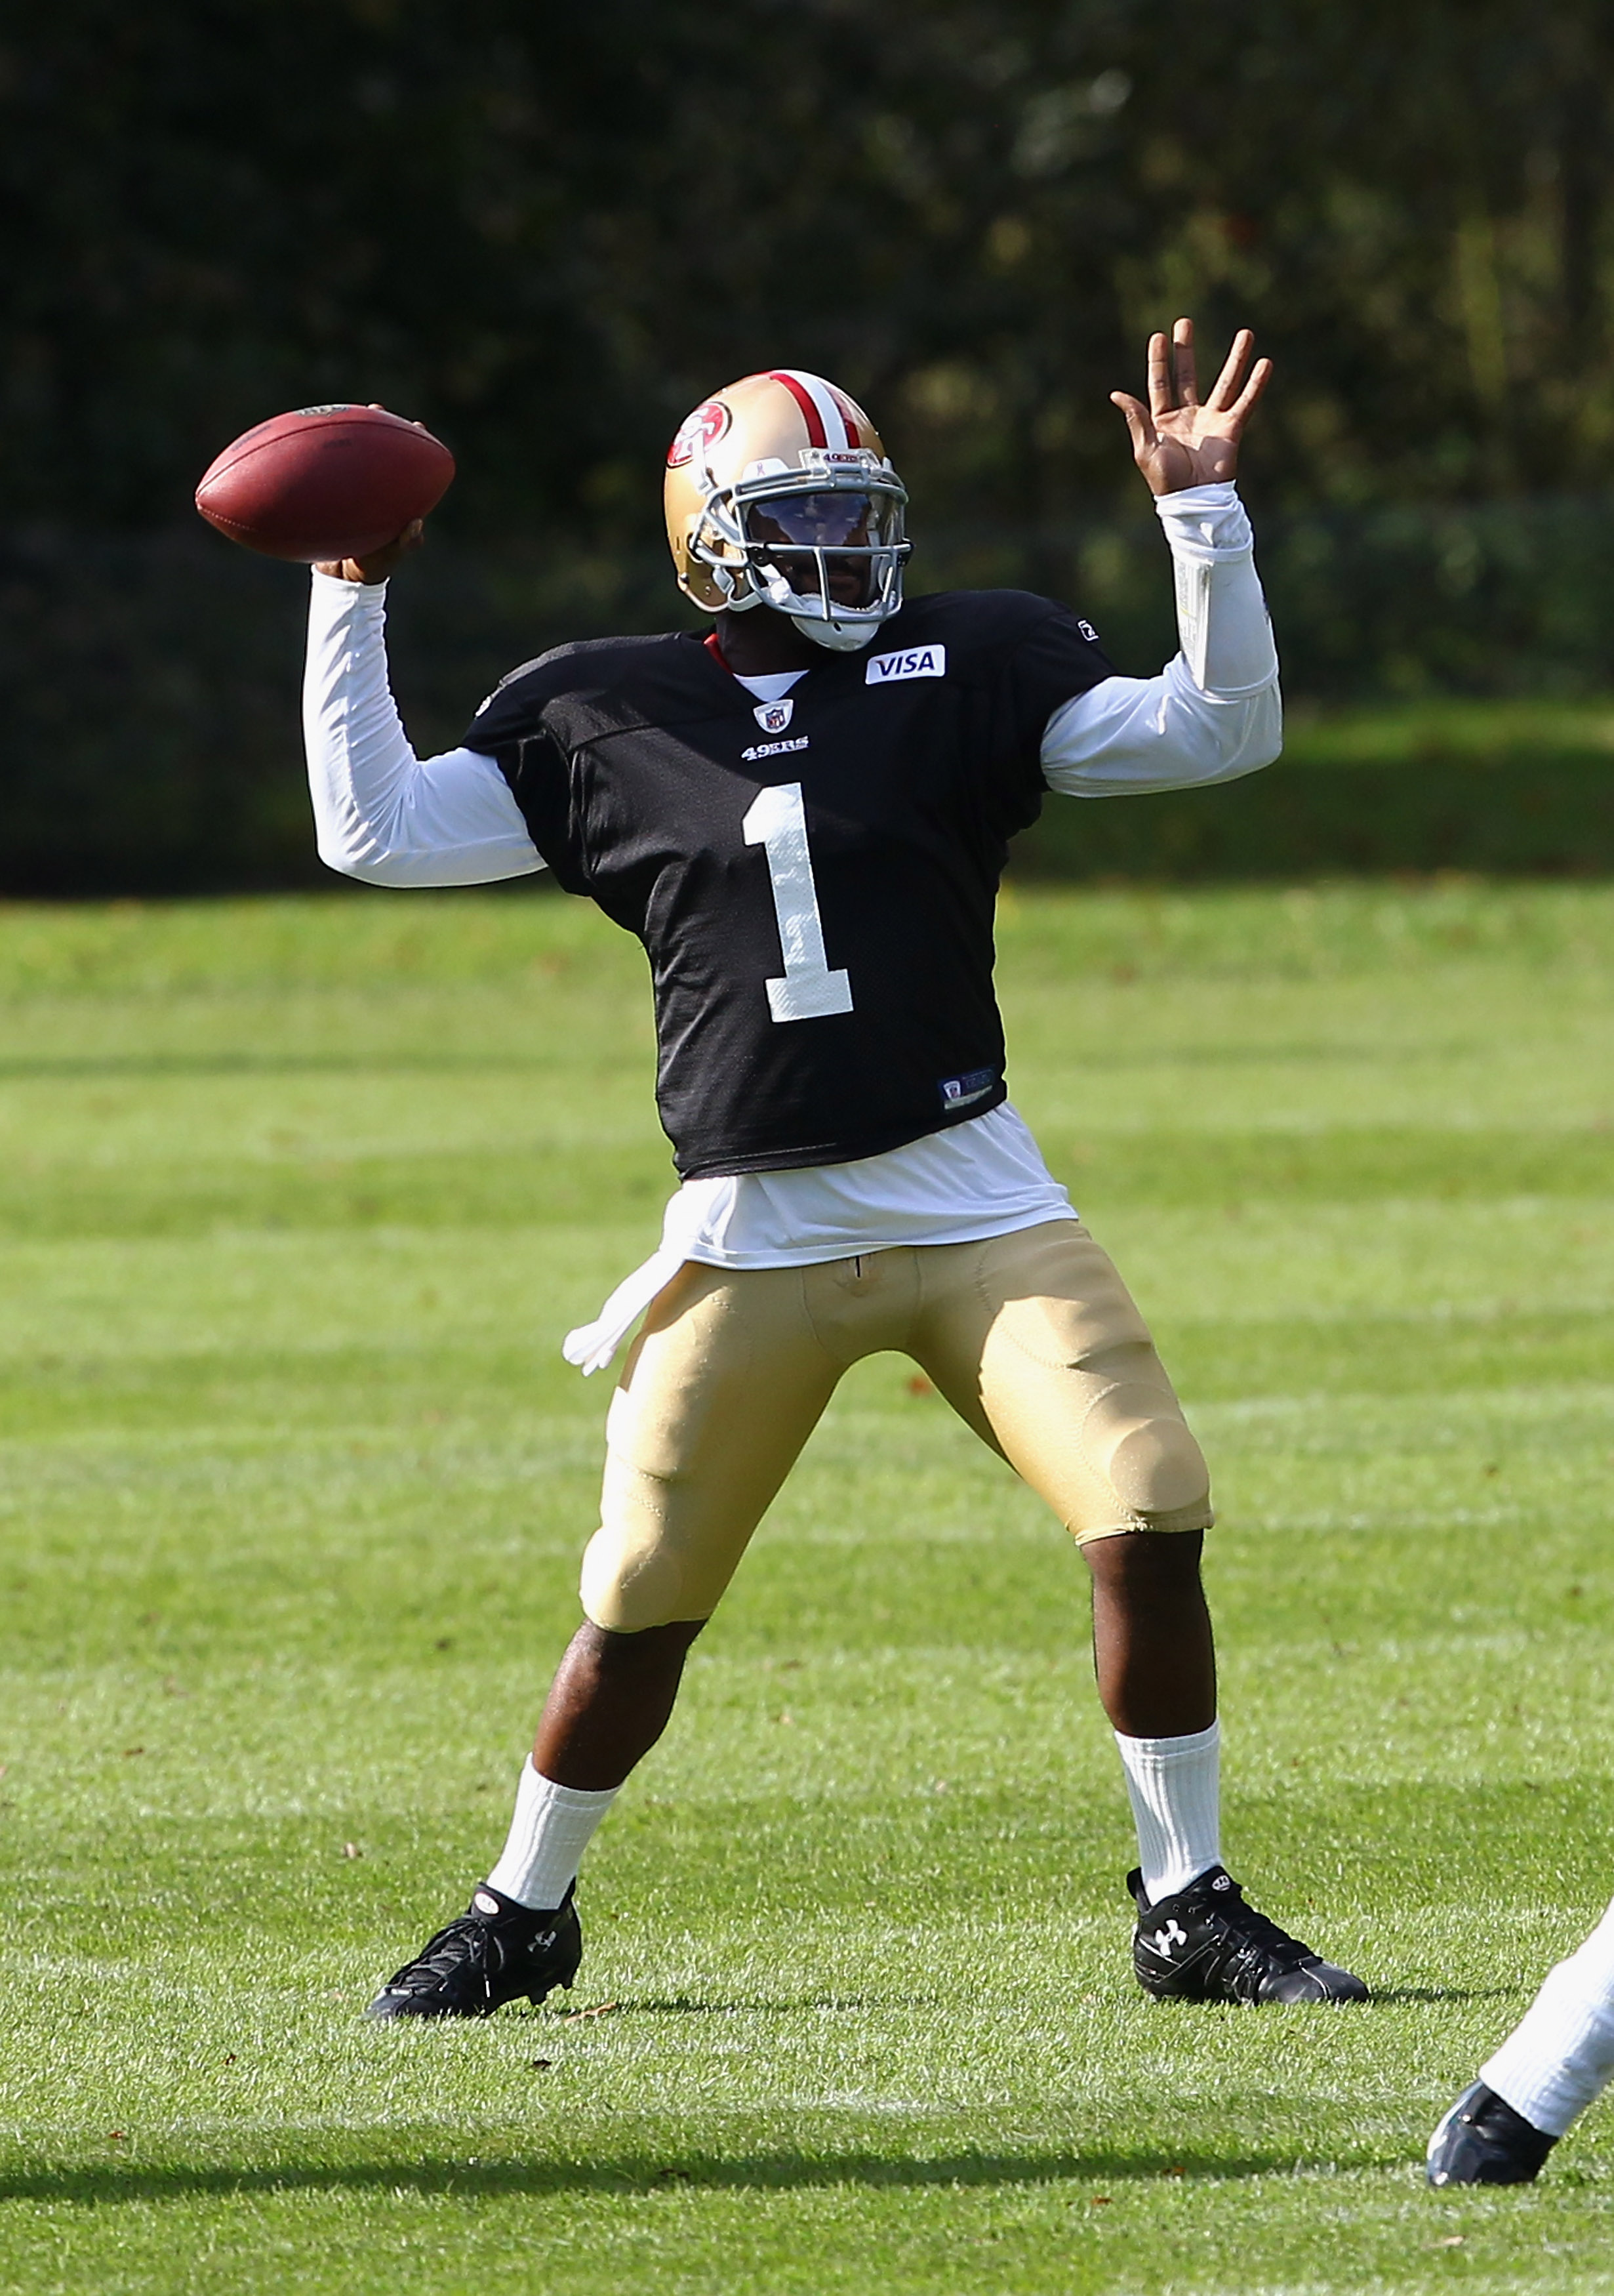 HERTFORD, ENGLAND - OCTOBER 27:  Troy Smith of San Francisco 49ers in a training session at The Grove Hotel on October 27, 2010 in Hertford, England. The San Francisco 49ers will meet the Denver Broncos in the NFL International Series regular-season match